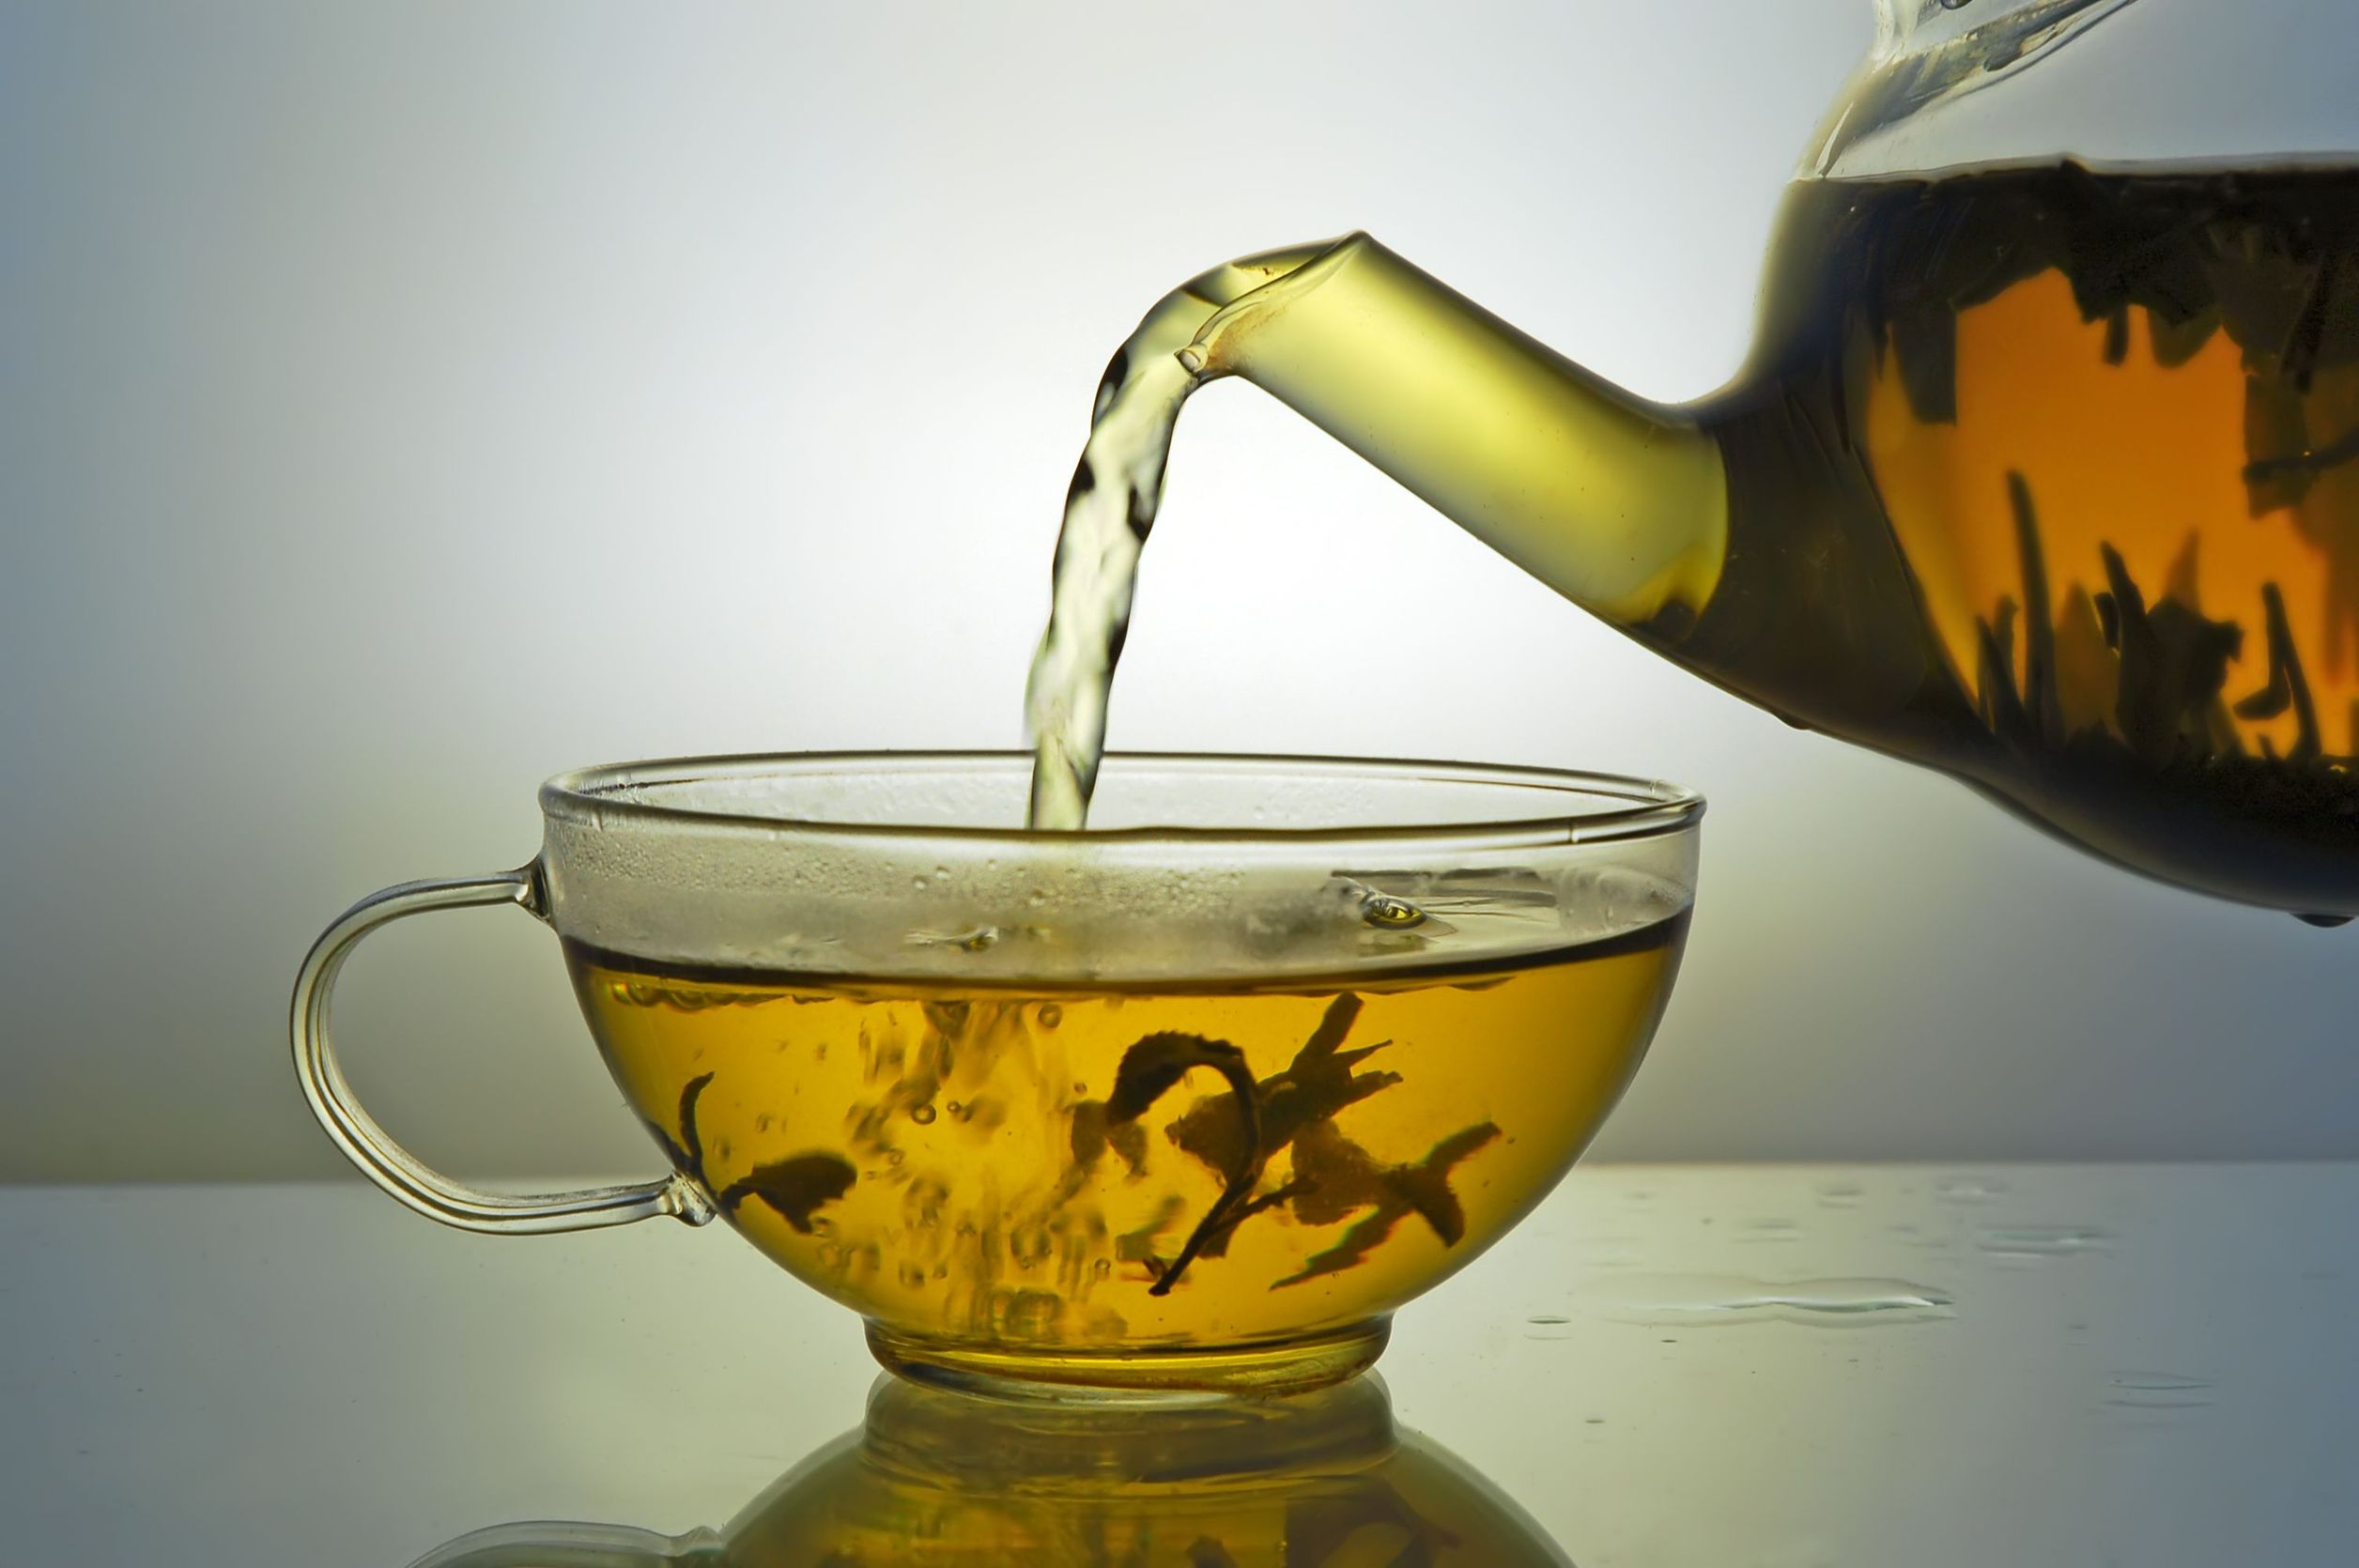 3007241 - green tea pouring into glass cup from teapot on blue background